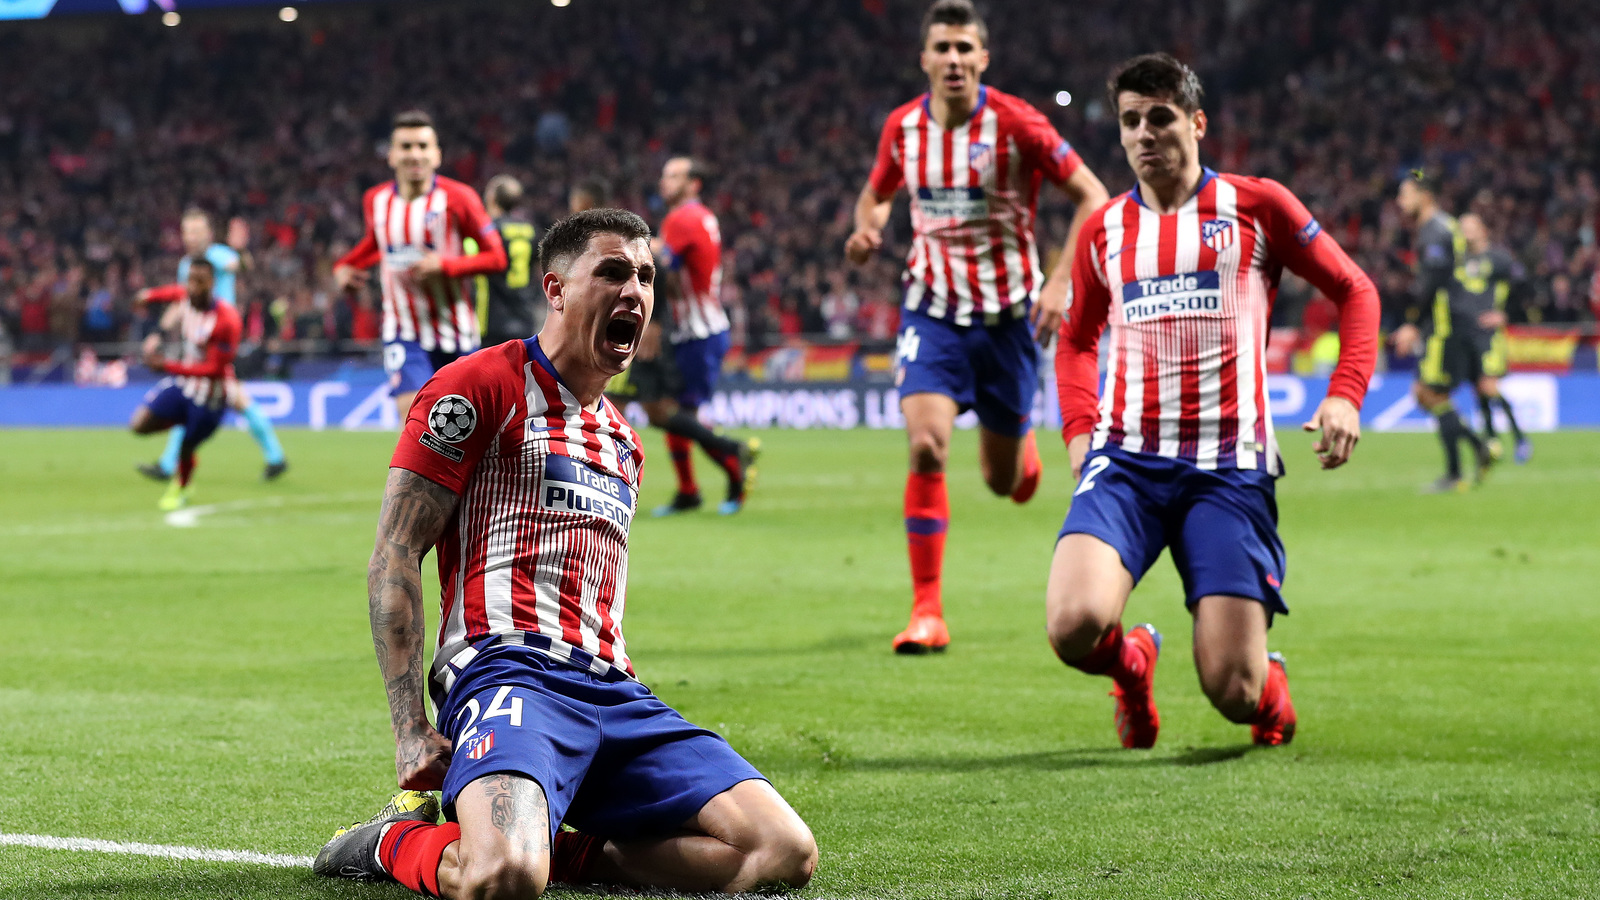 Atleti's's capacity to beat Liverpool remains largely theoretical